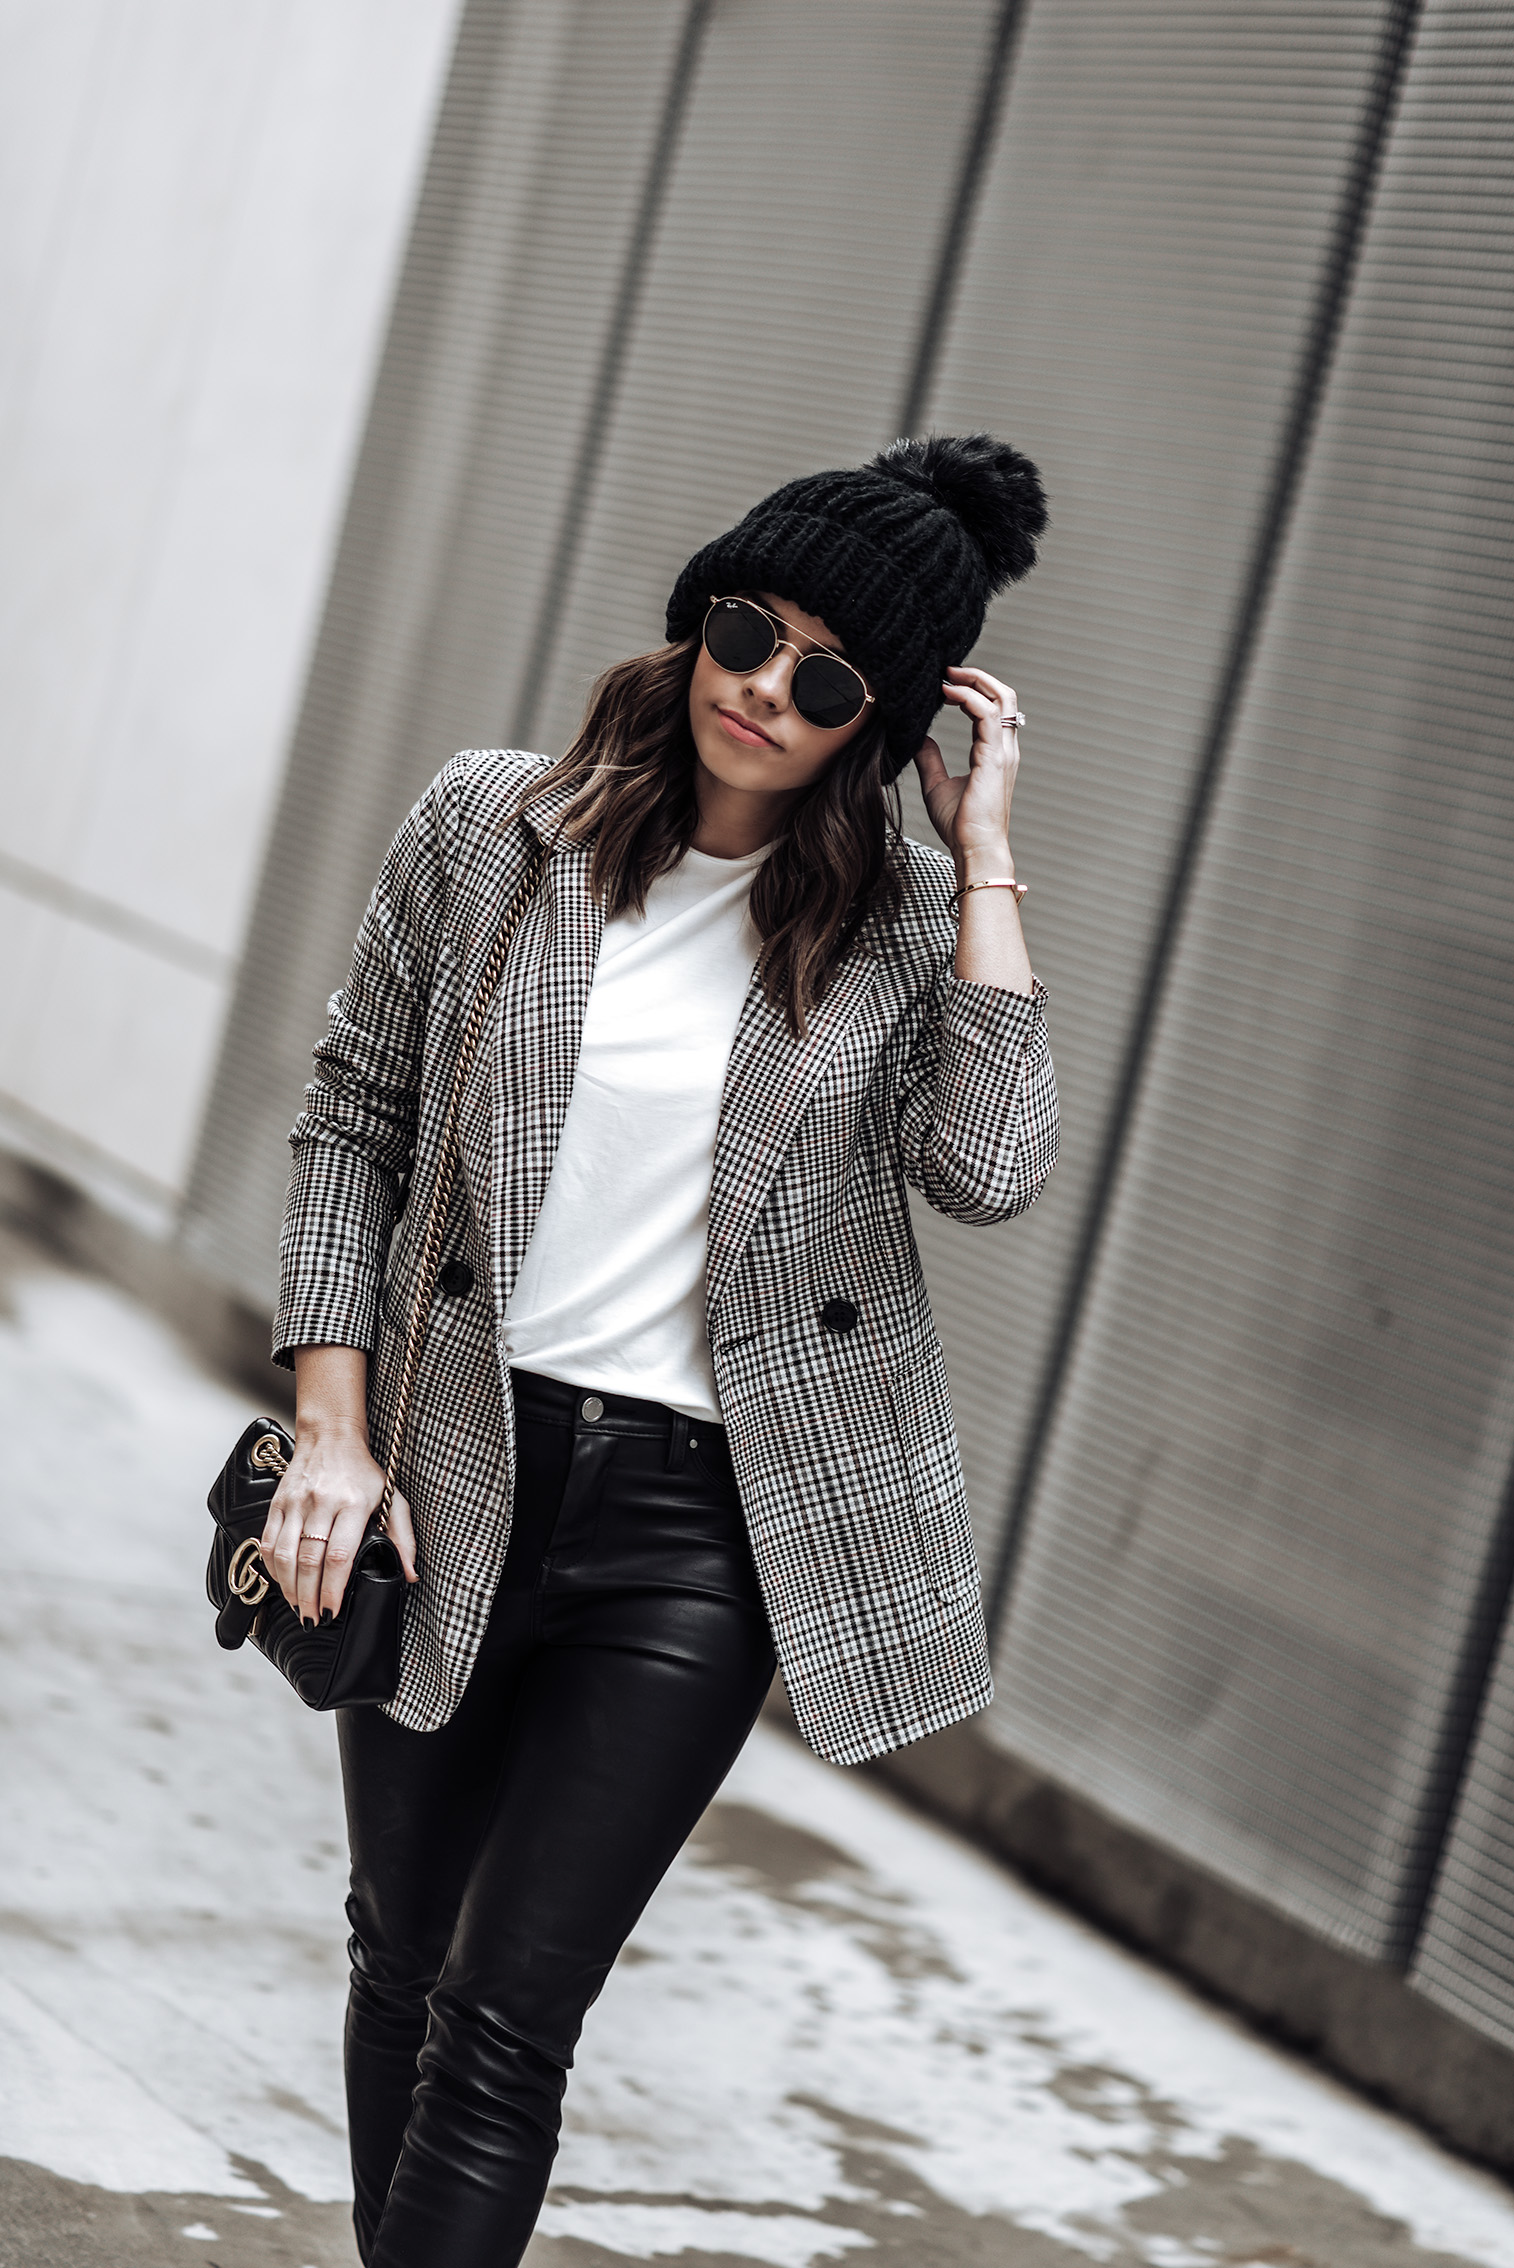 Tiffany Jais fashion and lifestyle blogger of Flaunt and Center | Houston fashion blogger | Checked print blazer | Streetstyle blog |Checked Blazer | Mid Rise Vegan Leather Skinny Jeans | Golden Goose Sneakers | Beanie | Sunglasses | #streetstyle checked blazer #beanieoutfits #falloutfitideas